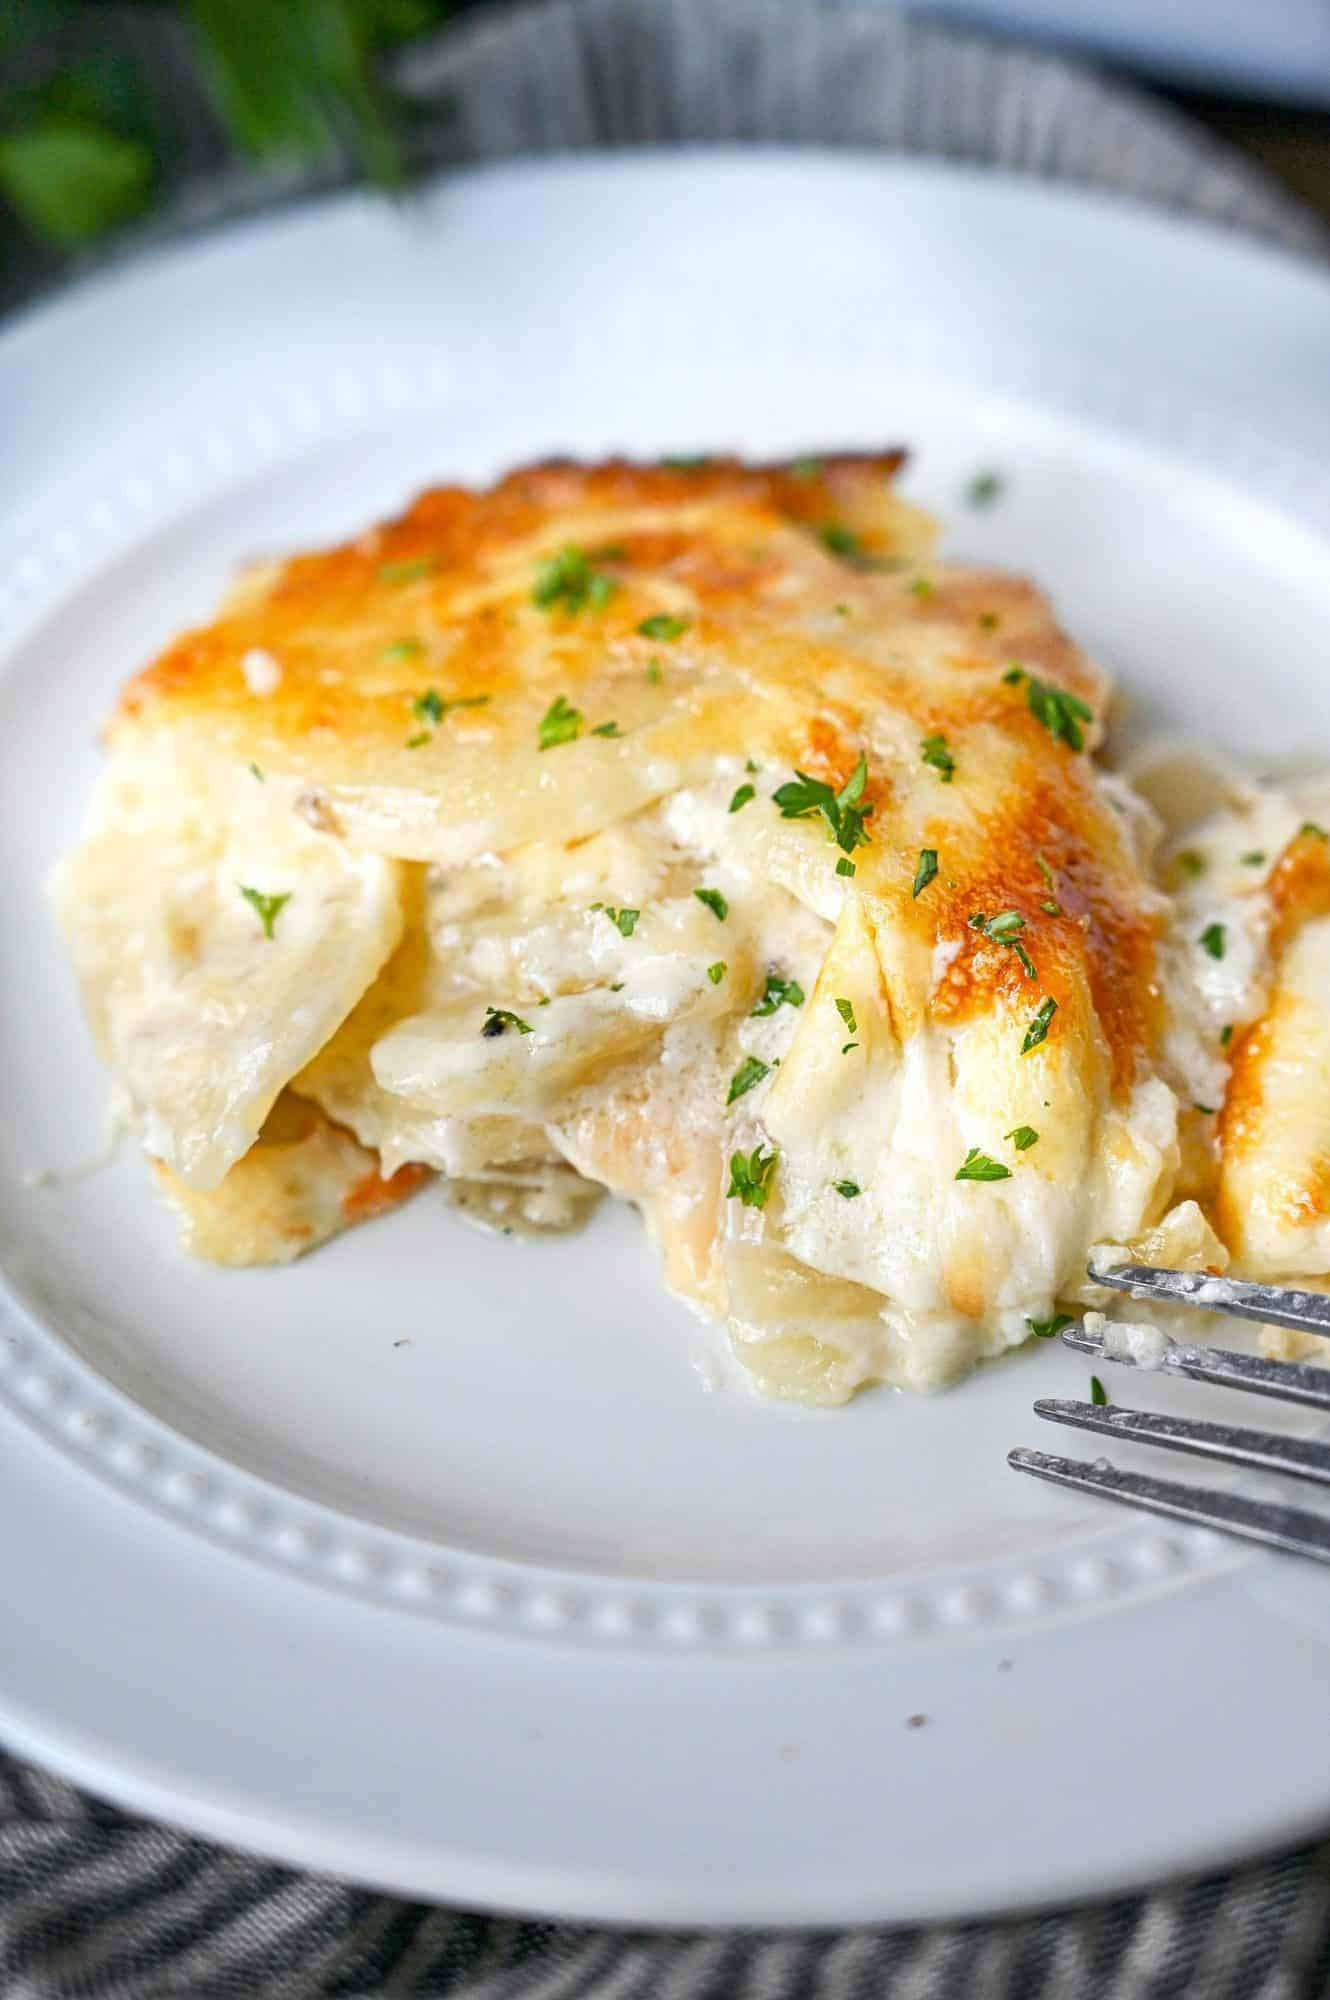 A scoop of potatoes au gratin on a small white plate with a fork.